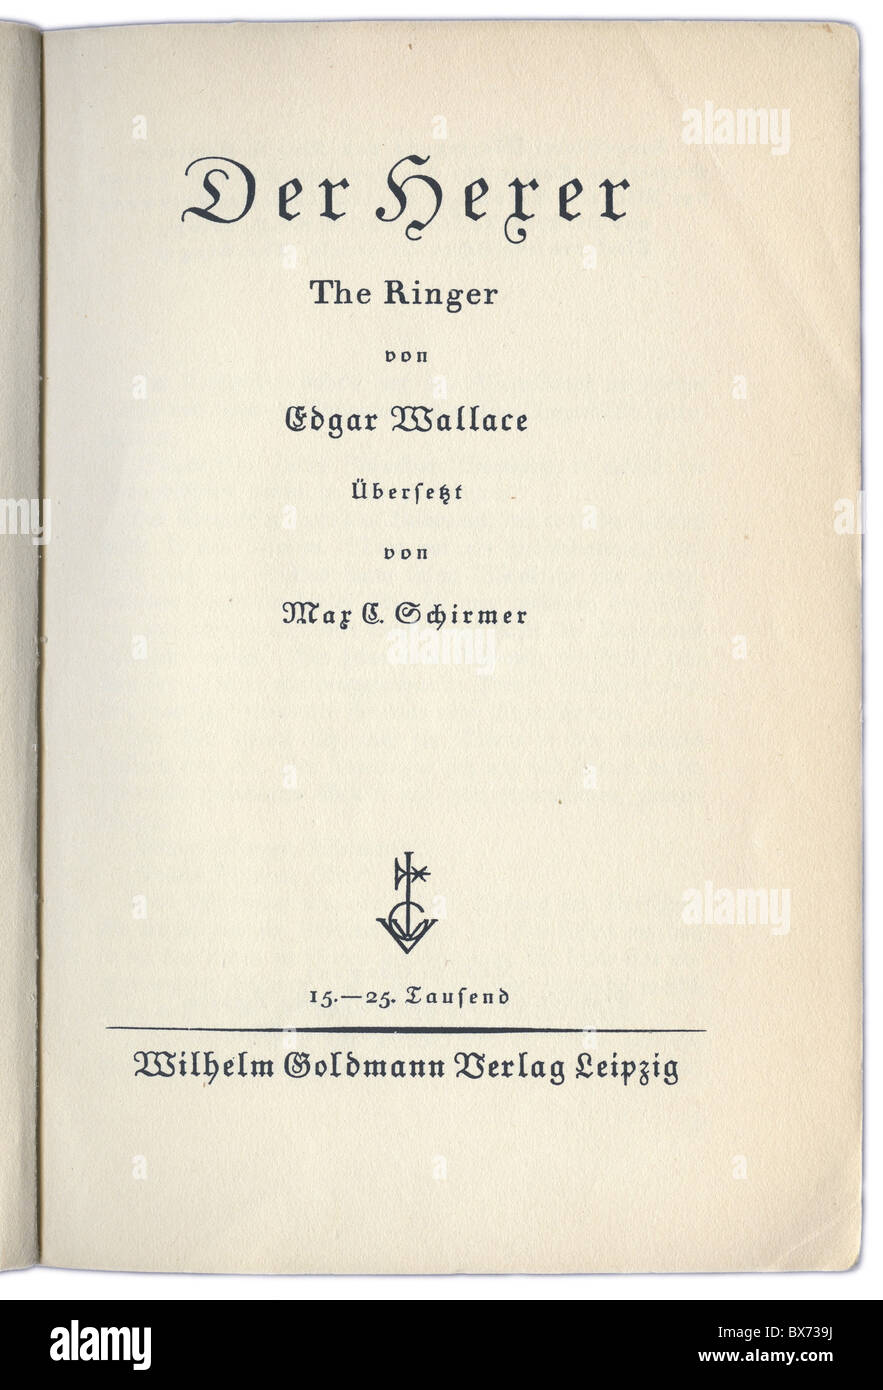 books, Edgar Wallace: 'The Ringer' (1926), German edition, transcription by Max Schirmer, published by Verlag - Stock Image